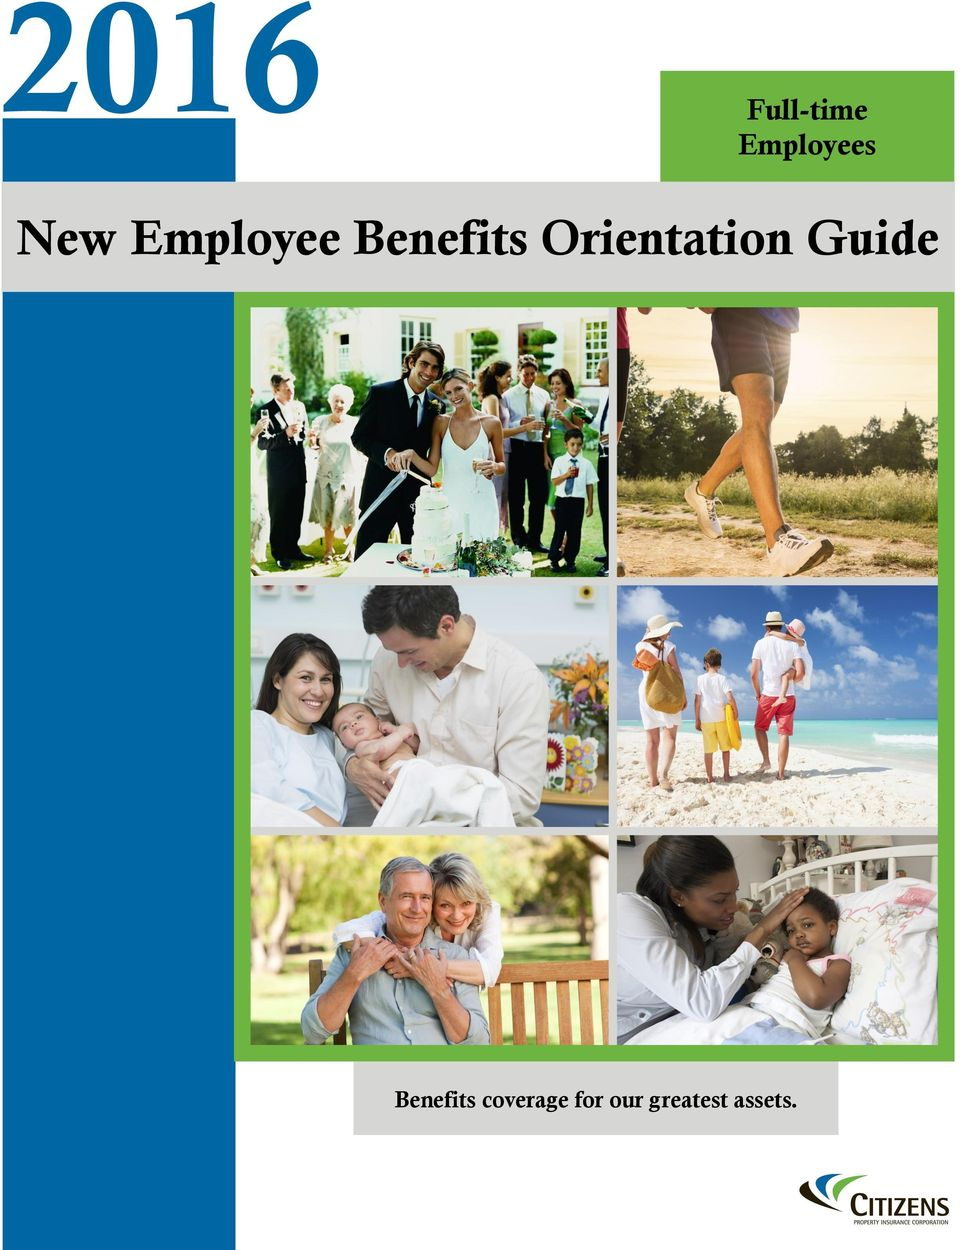 Orientation Guide Benefits